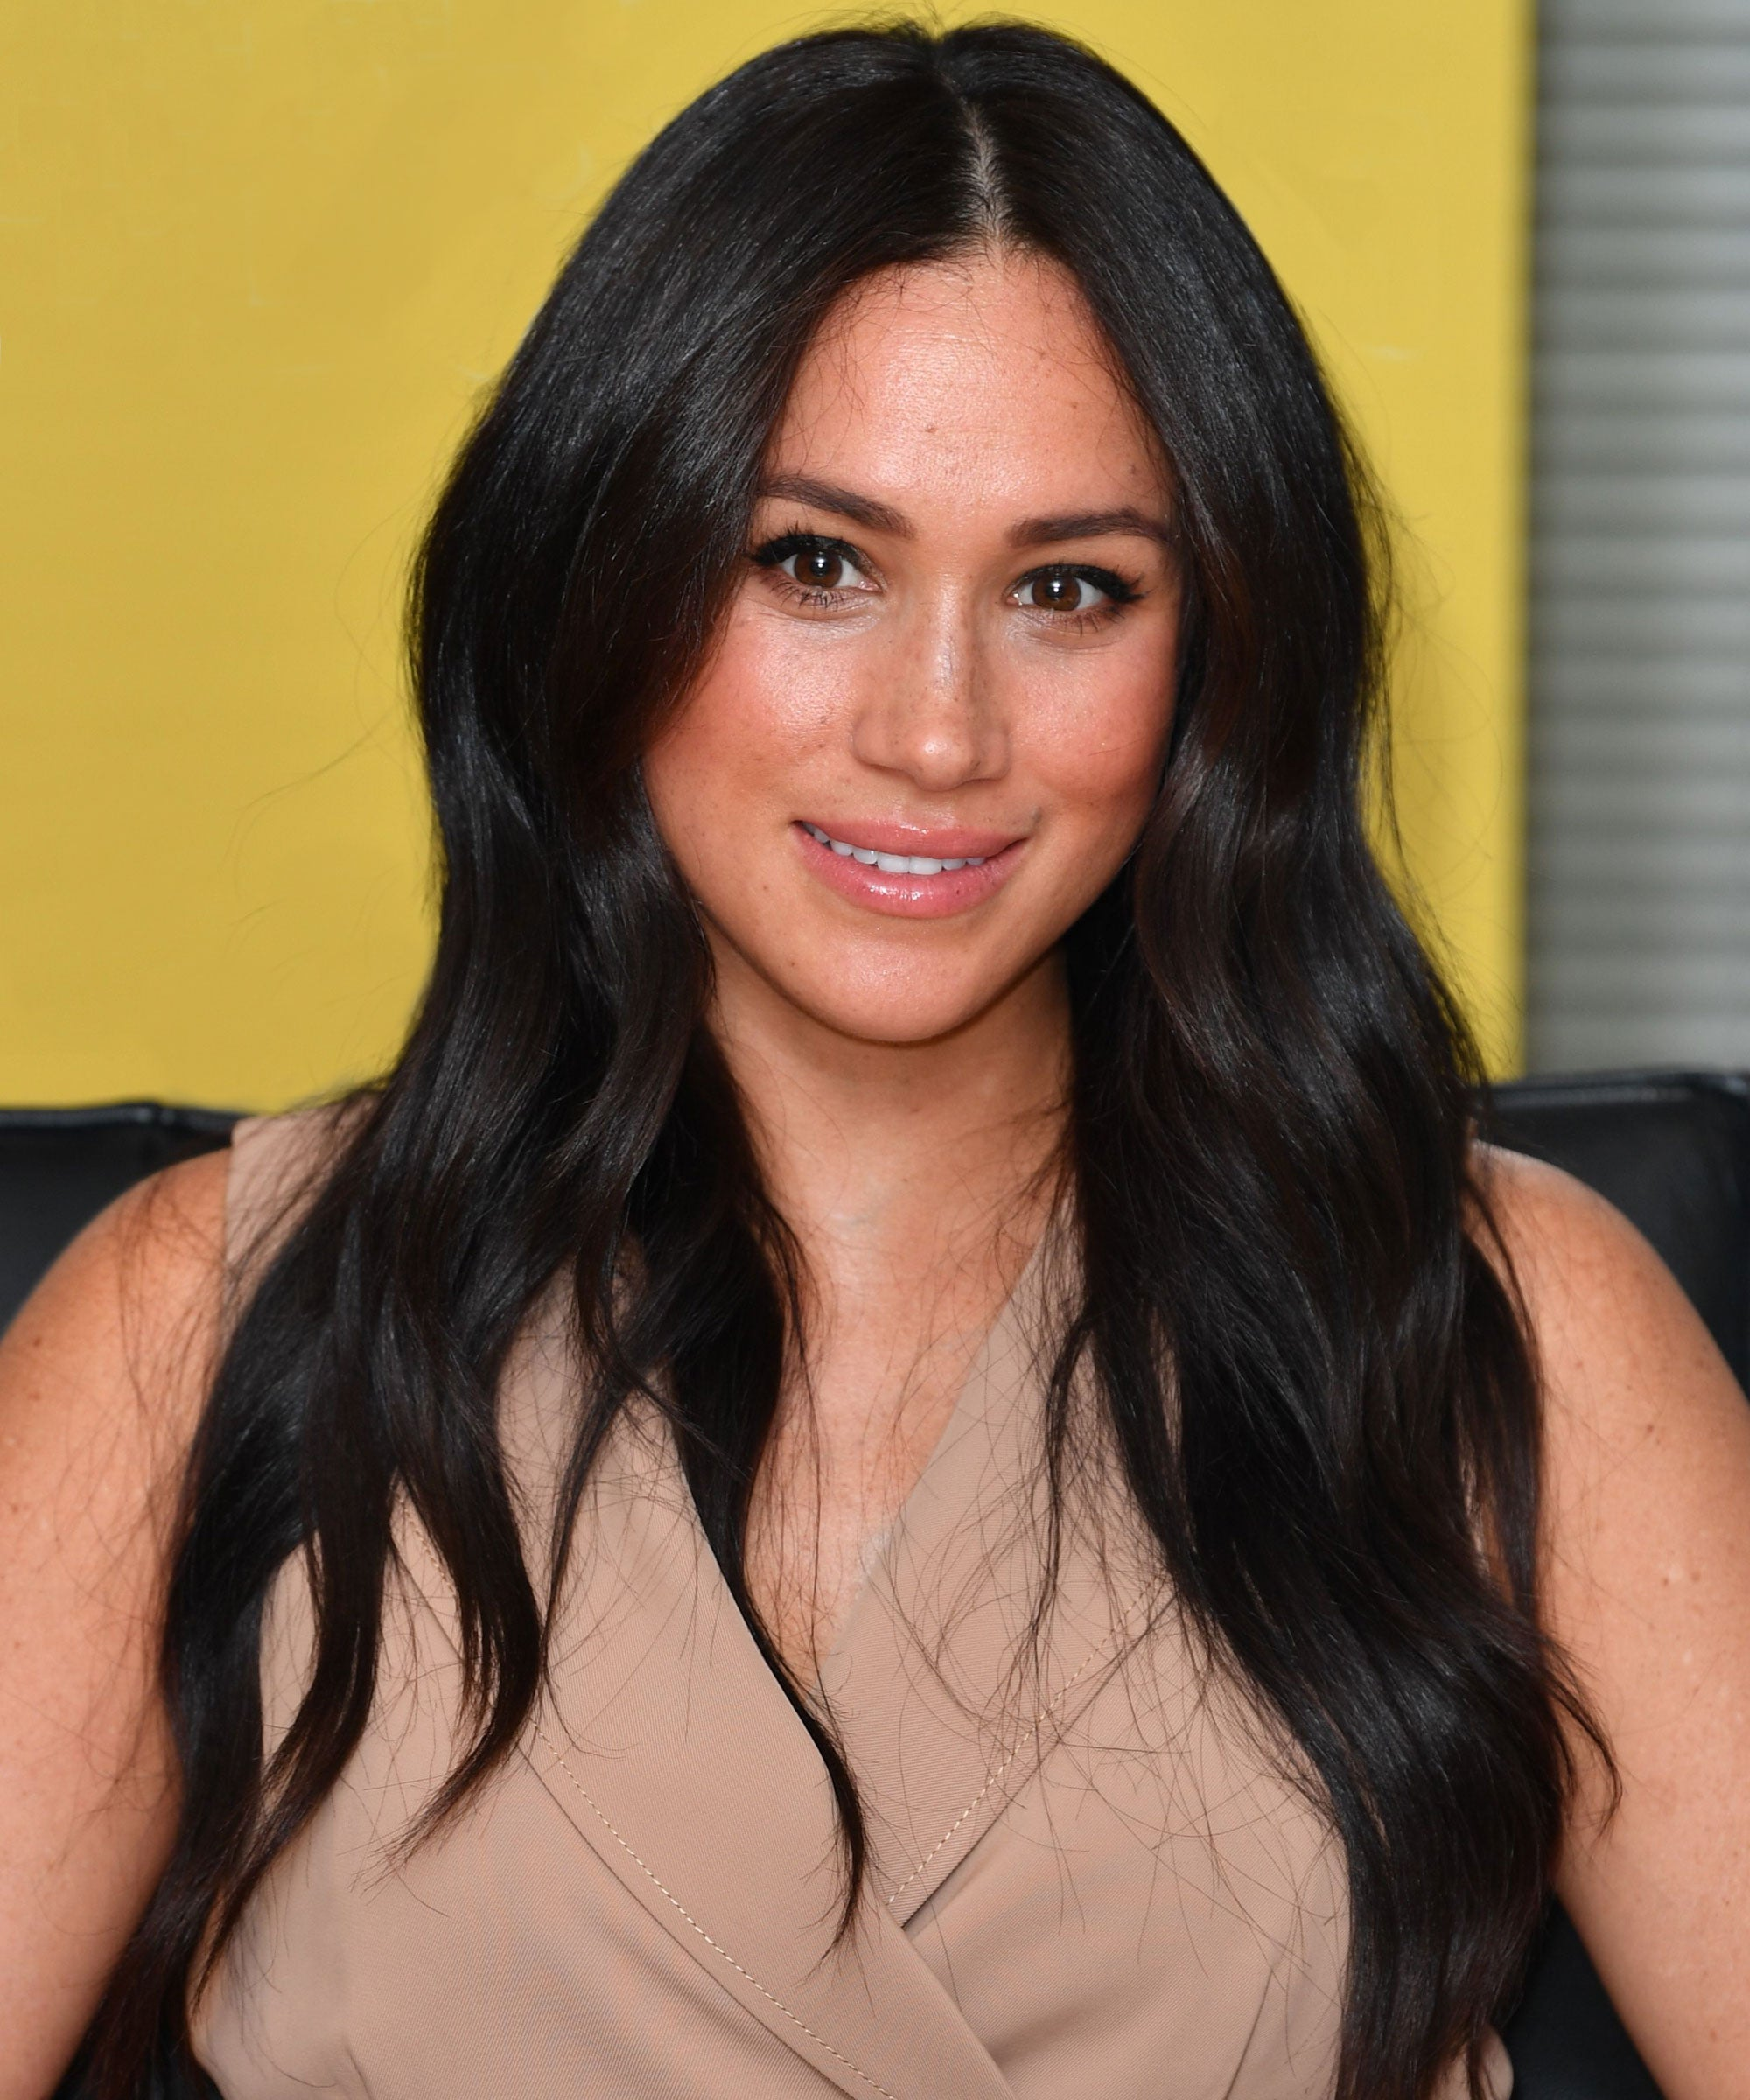 Meghan Markle Isn't Overreacting: She Gets More Negative Press Than Positive